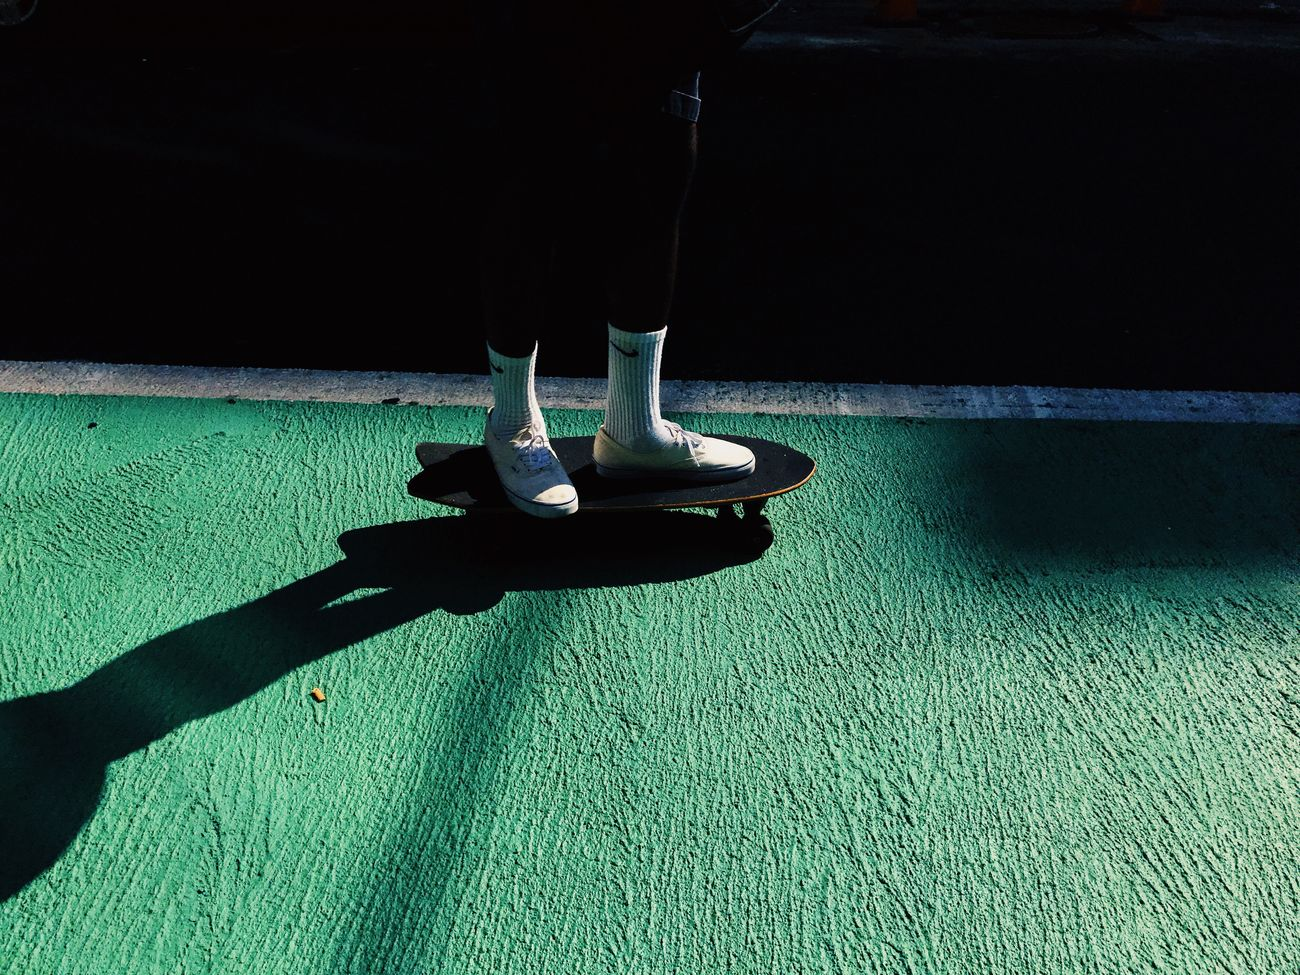 The Street Photographer - 2017 EyeEm Awards IPhone VSCO Indoors  Shadow Real People Human Body Part Night Low Section One Person Pool Table Human Hand Close-up Pool Ball People